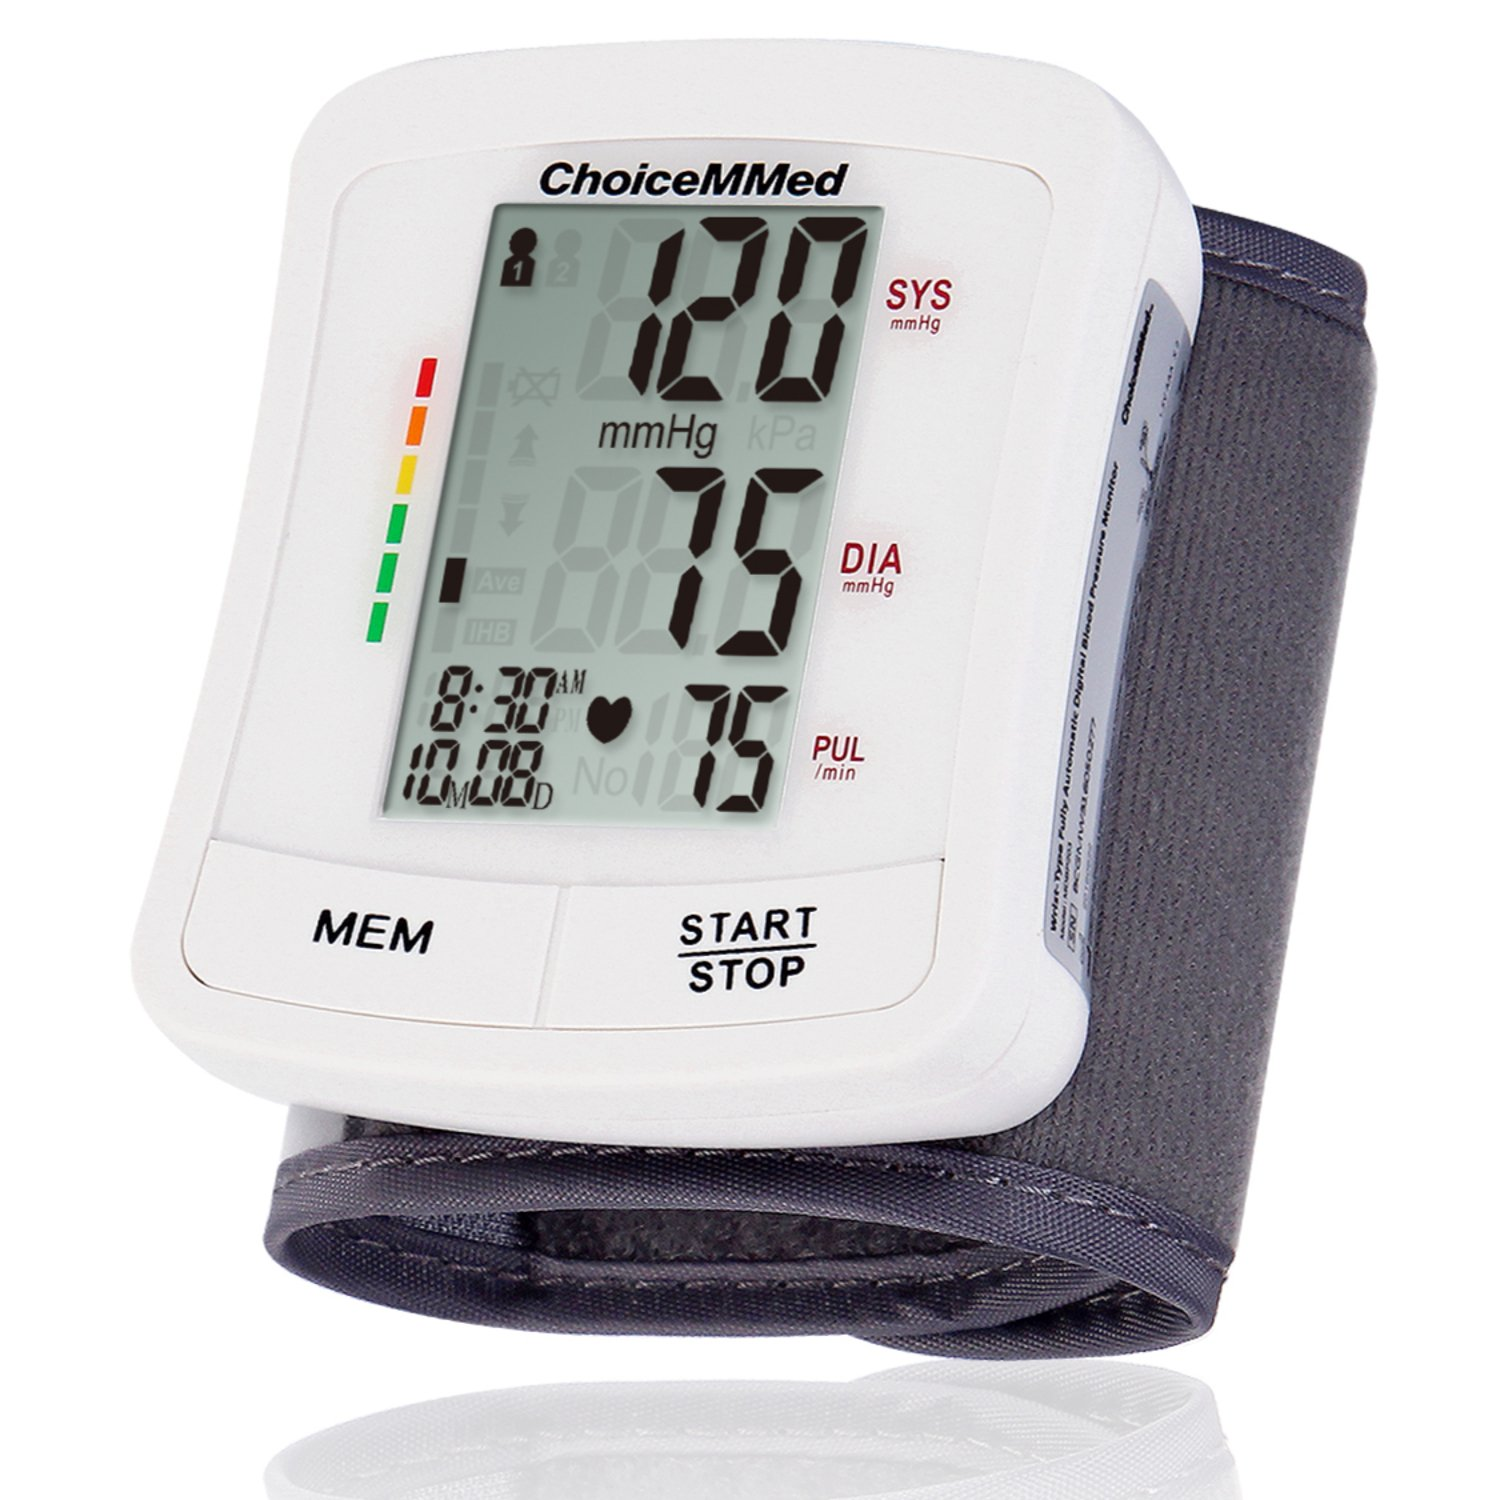 CHOICEMMED Wrist Blood Pressure Monitor